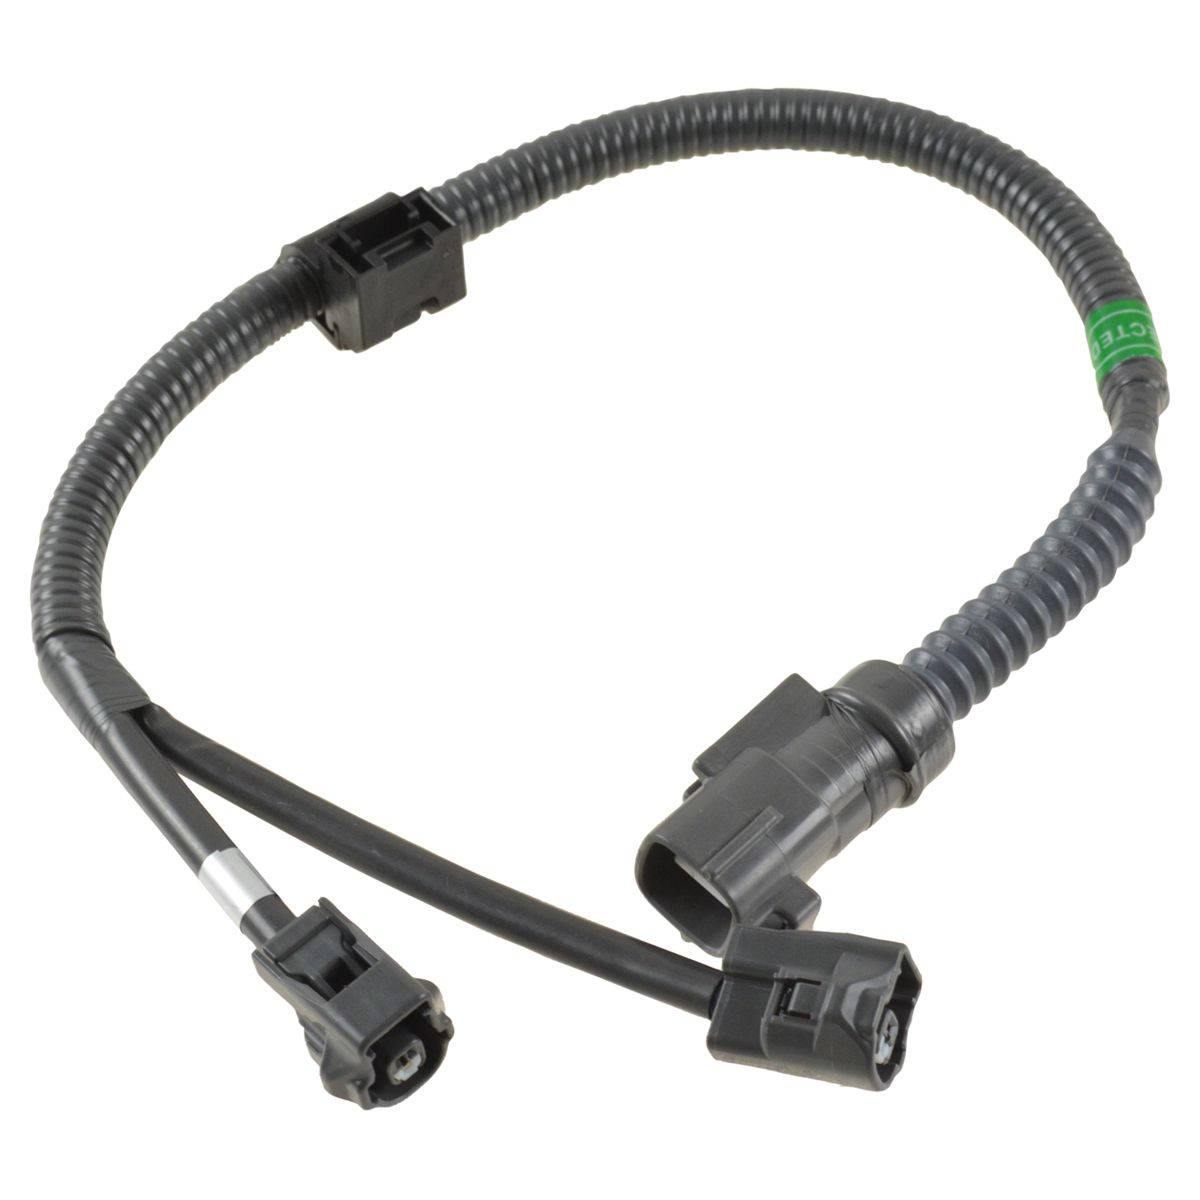 5915a Details About Oem Engine Knock Sensor Wiring Harness Pigtail Plug For 3 0 Toyota Lexus New Wiring Library